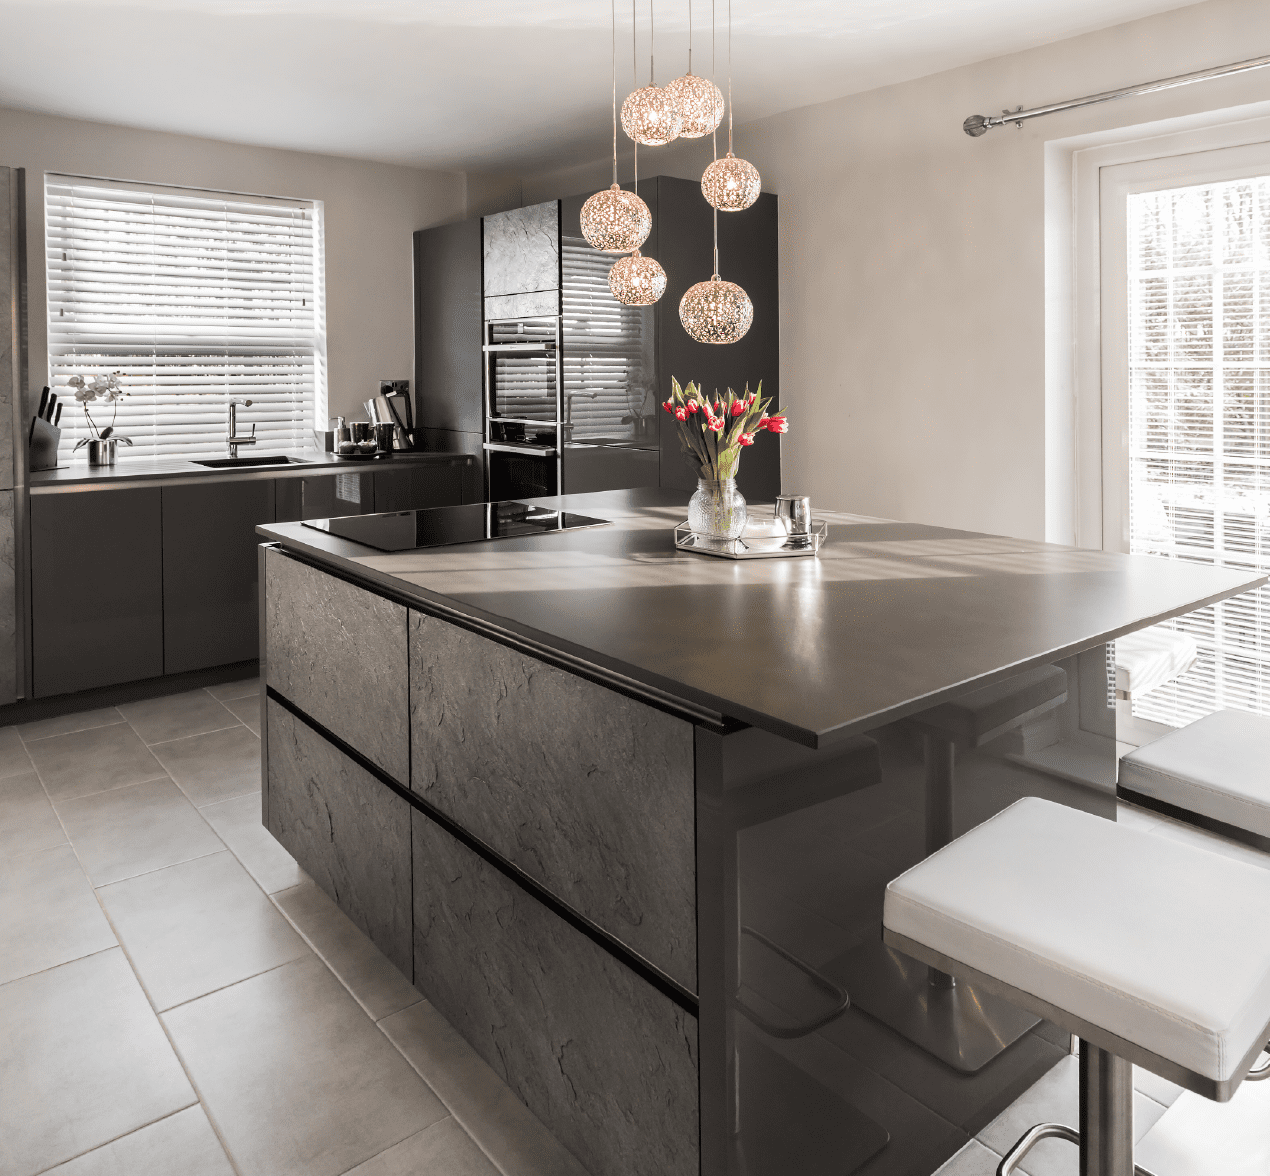 A Contemporary Social Kitchen With An Island